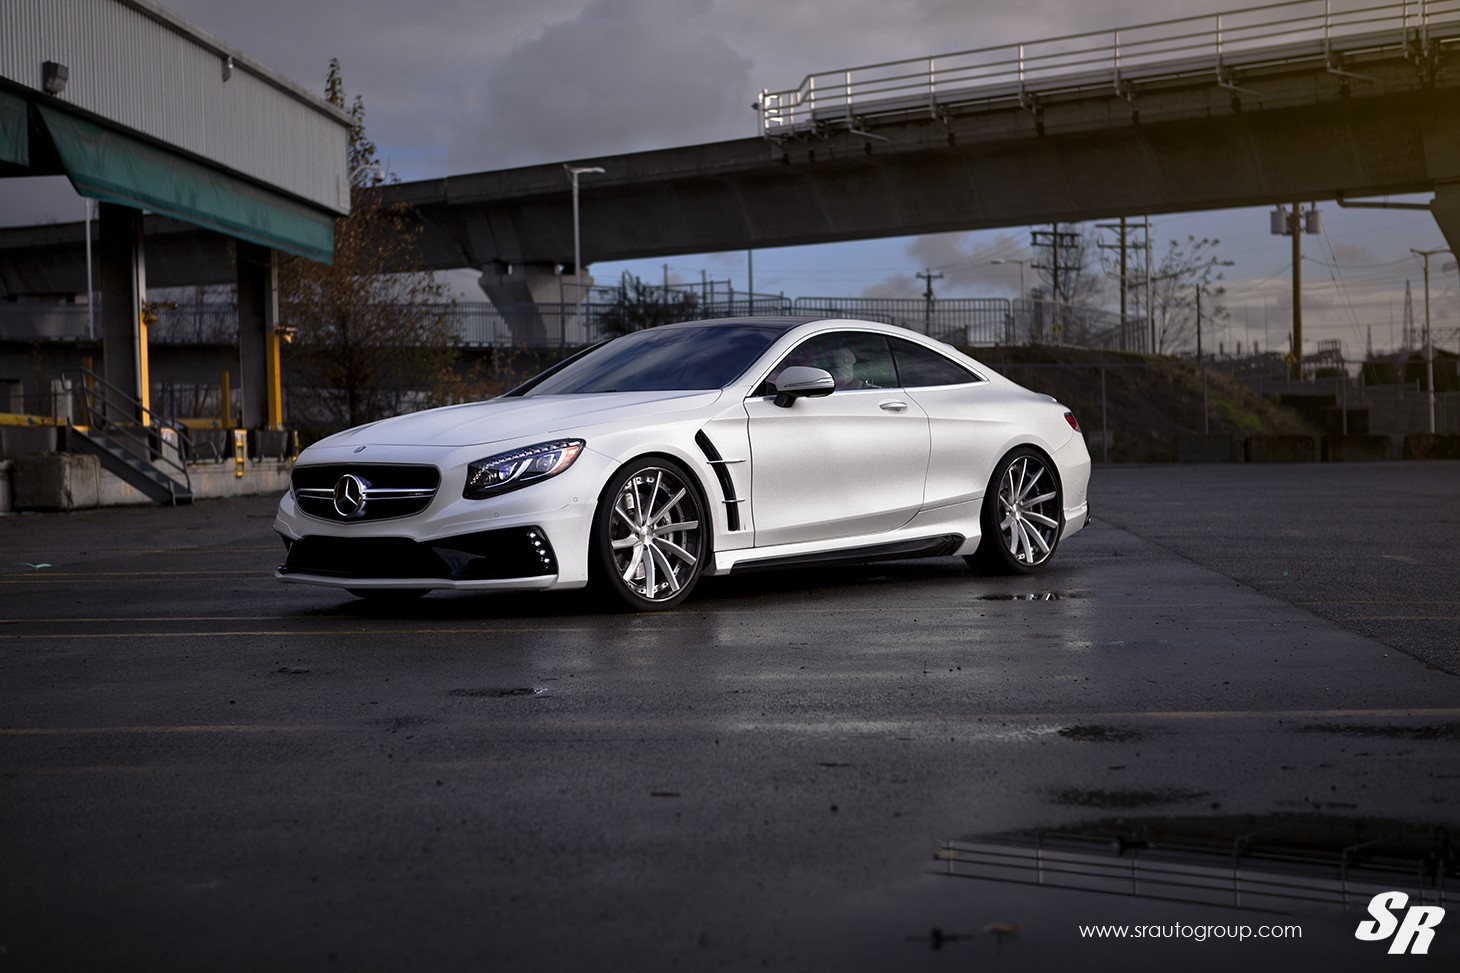 Mercedes Amg S63 Coupe Gets Wald Body Kit And Pur Wheels